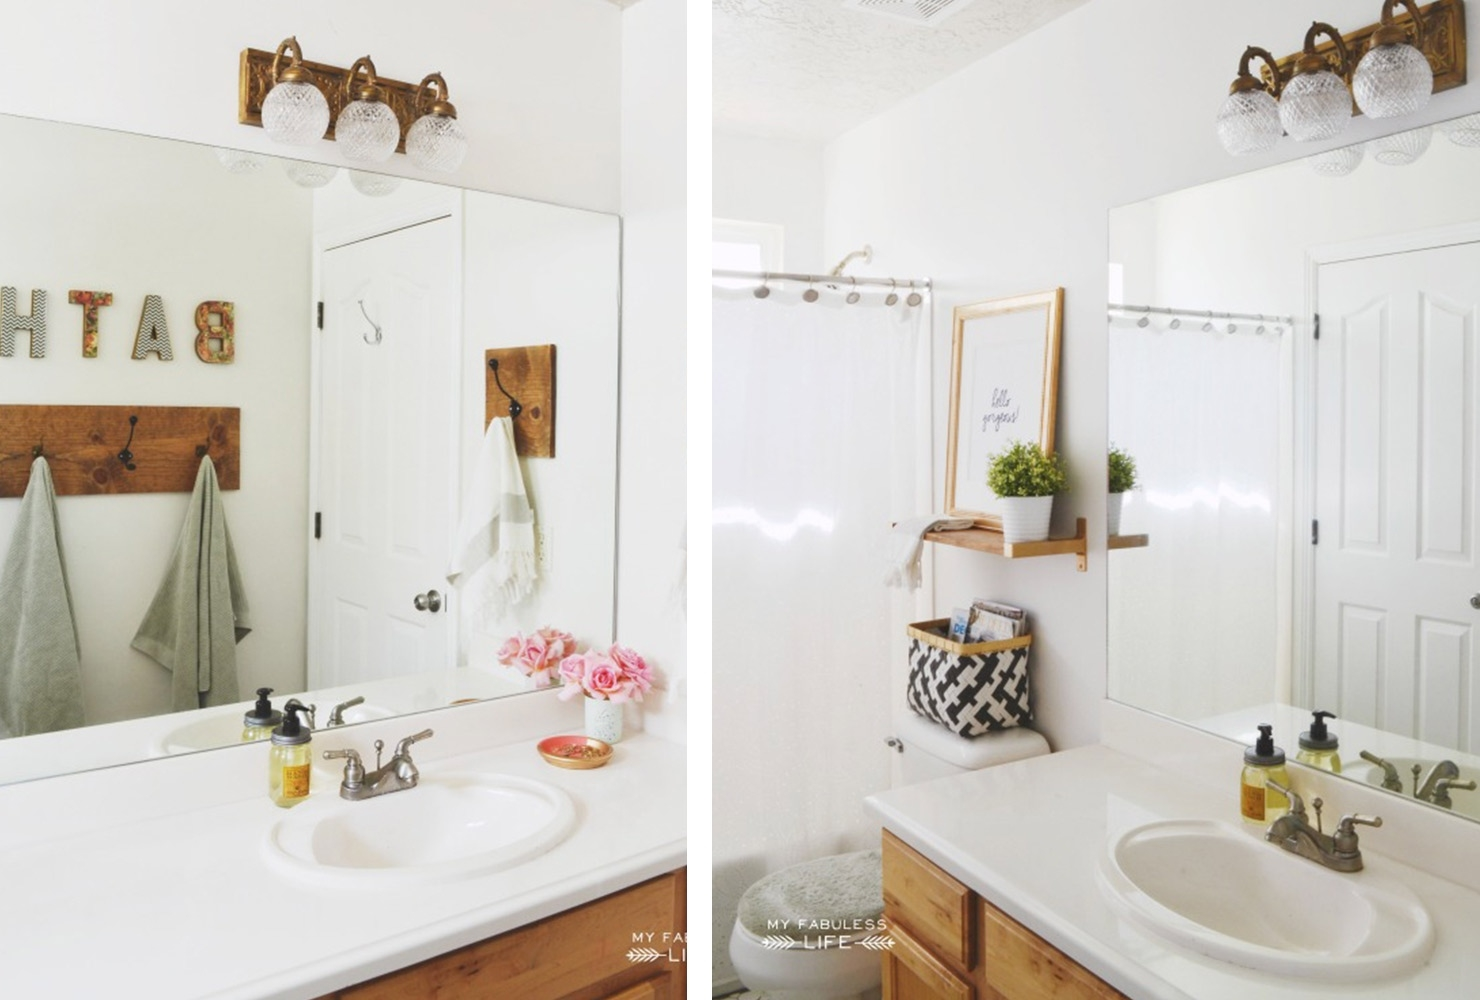 76 ways to decorate a small bathroom | shutterfly in Tips for Decorating The Bathroom